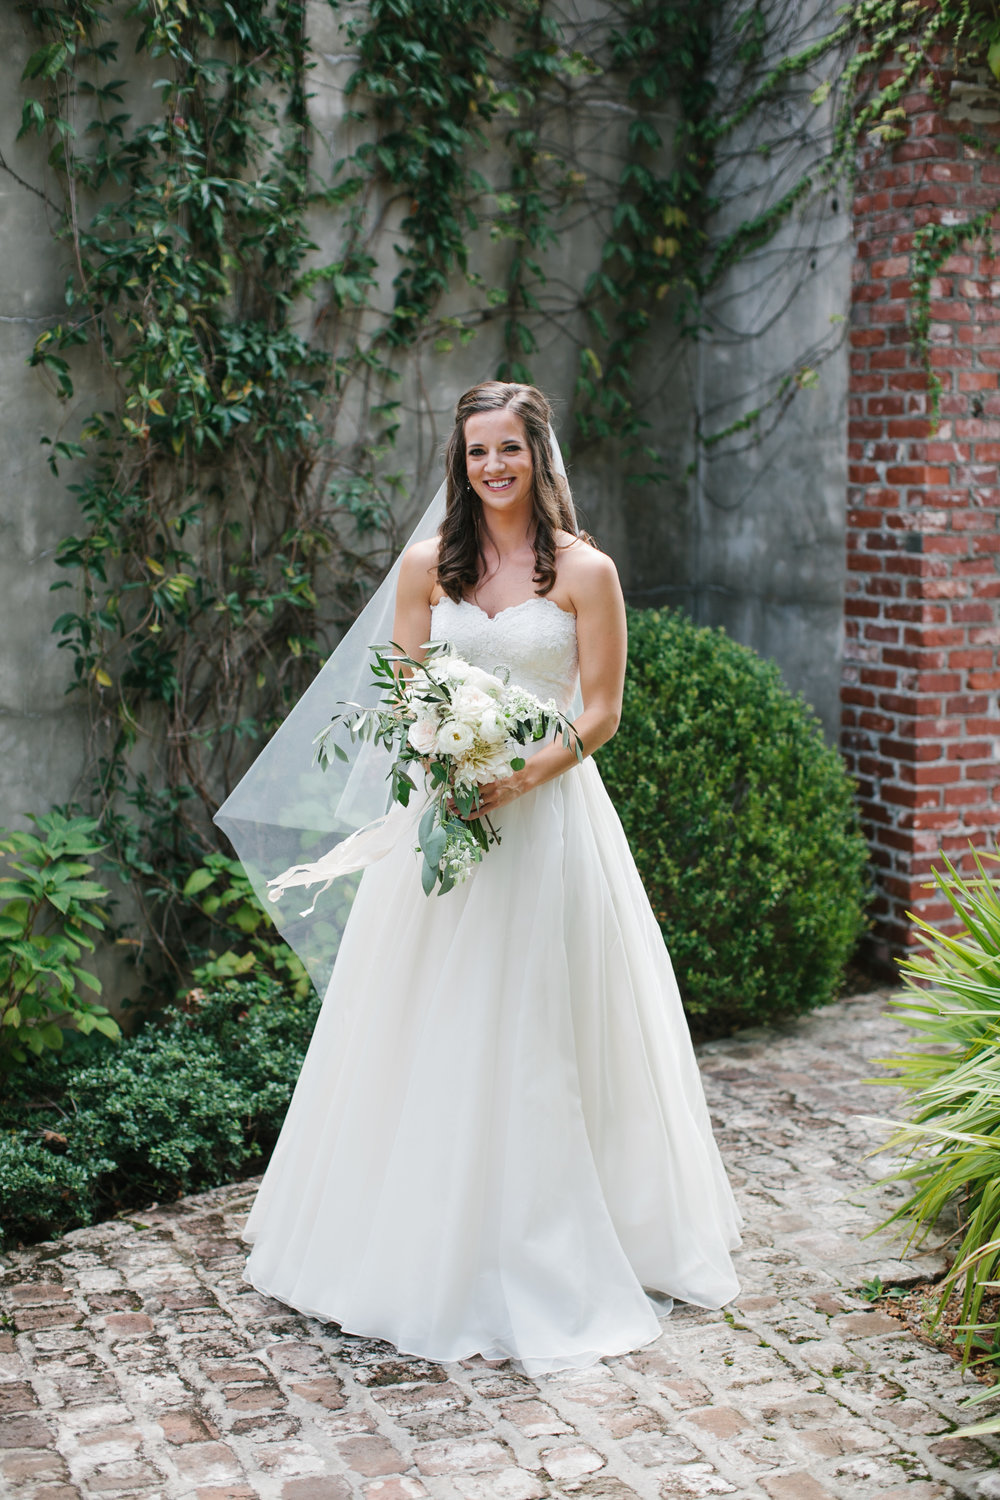 Meghan + Colin | Atlanta, Georgia Wedding | Summerour Studio | Victoria Austin Designs